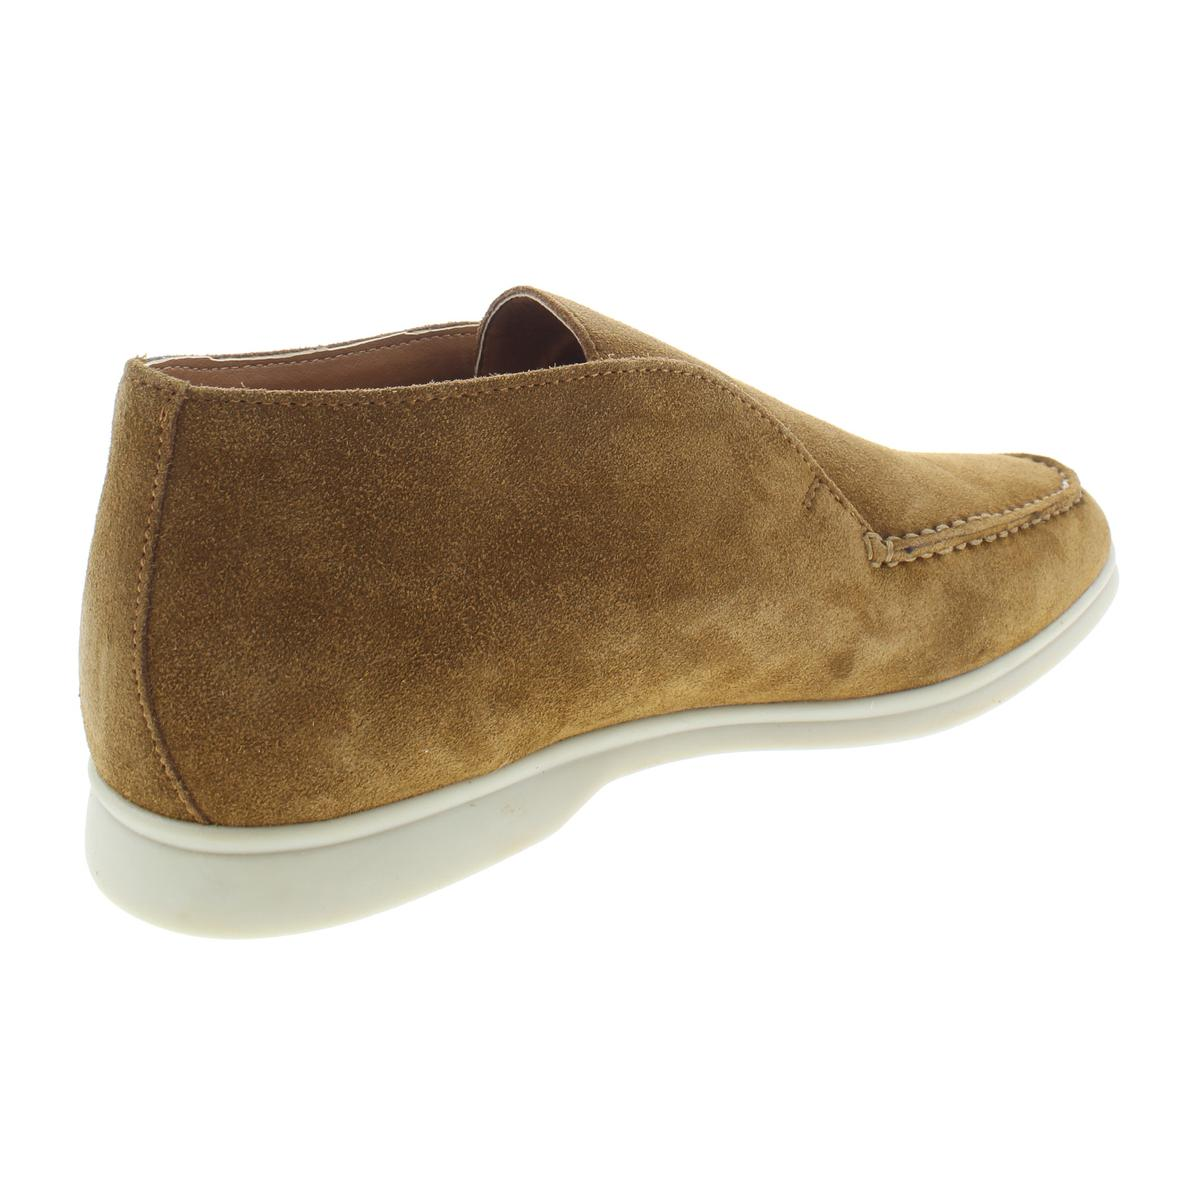 Steve-Madden-Men-039-s-Lost-Suede-Dress-Chukka-Ankle-Boots-Shoes thumbnail 7